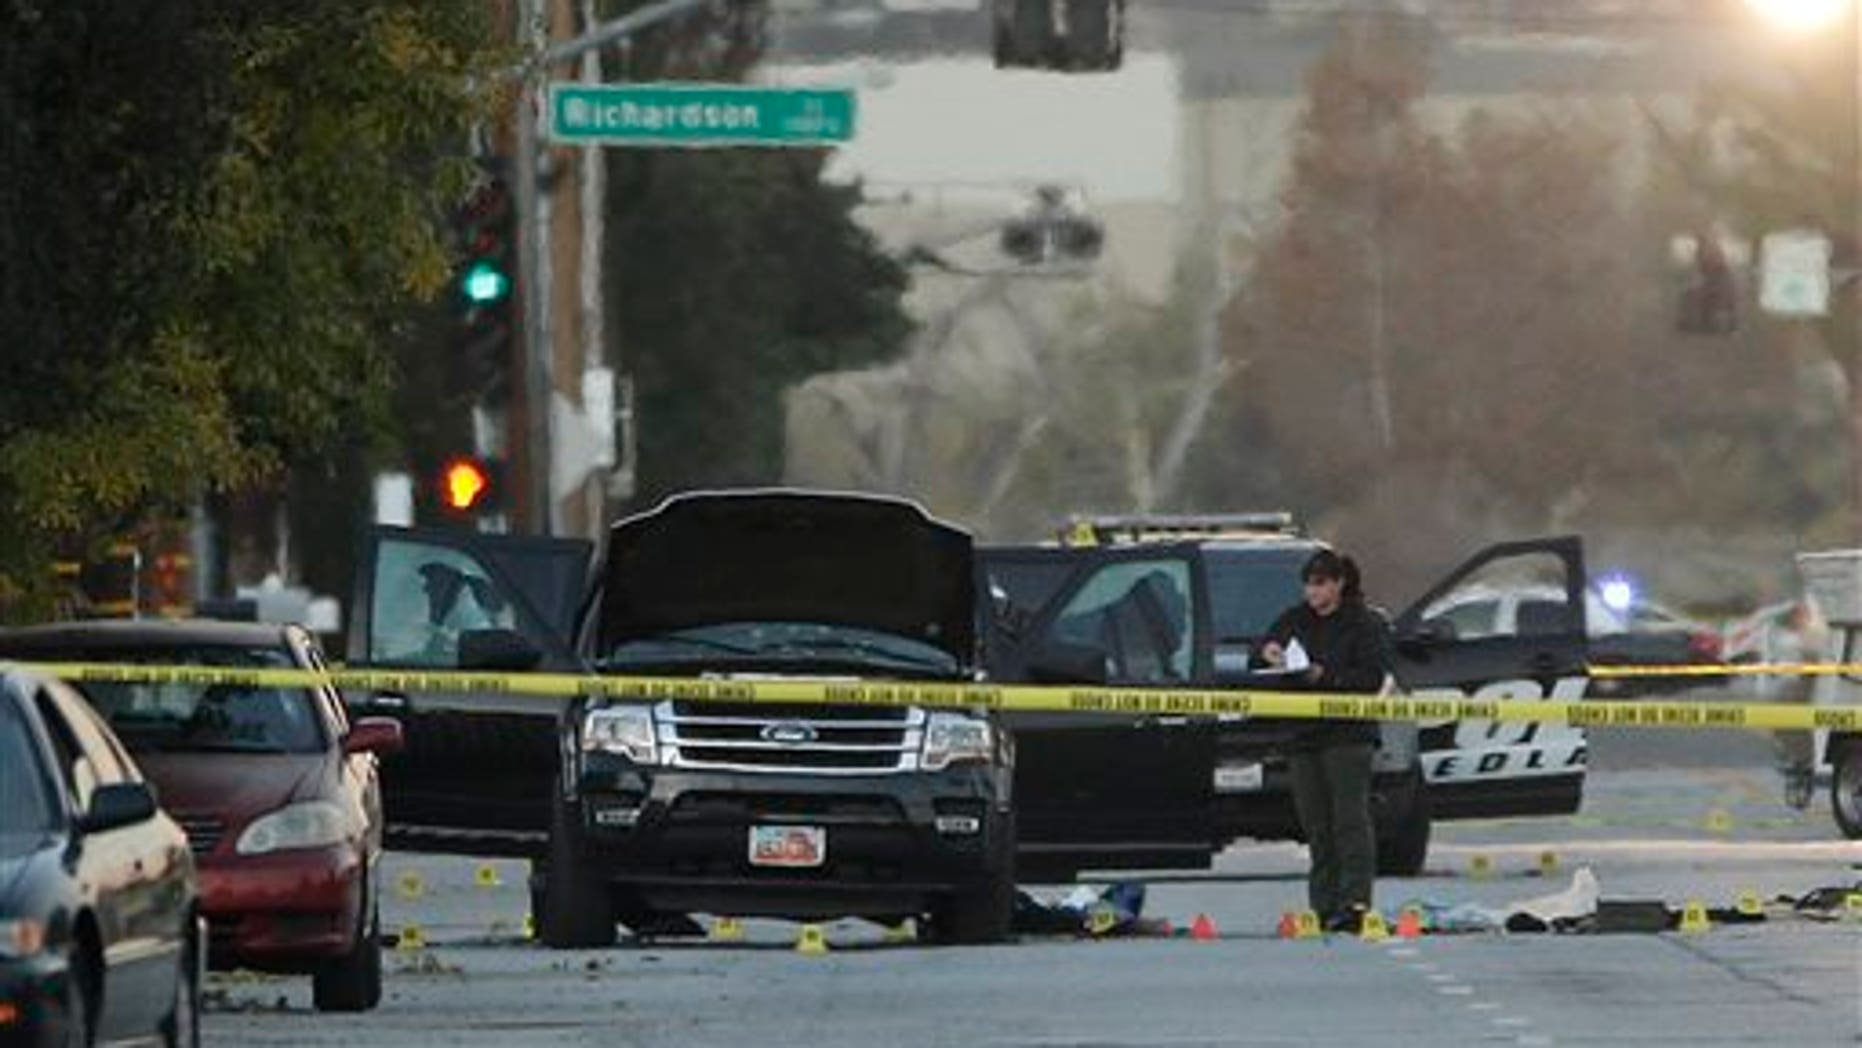 An investigator looks at a Black SUV that was involved in a police shootout with suspects, Thursday, Dec. 3, 2015, in San Bernardino, Calif.  A heavily armed man and woman opened fire Wednesday on a holiday banquet, killing multiple people and seriously wounding others in a precision assault, authorities said. Hours later, they died in a shootout with police.  (AP Photo/Jae C. Hong)